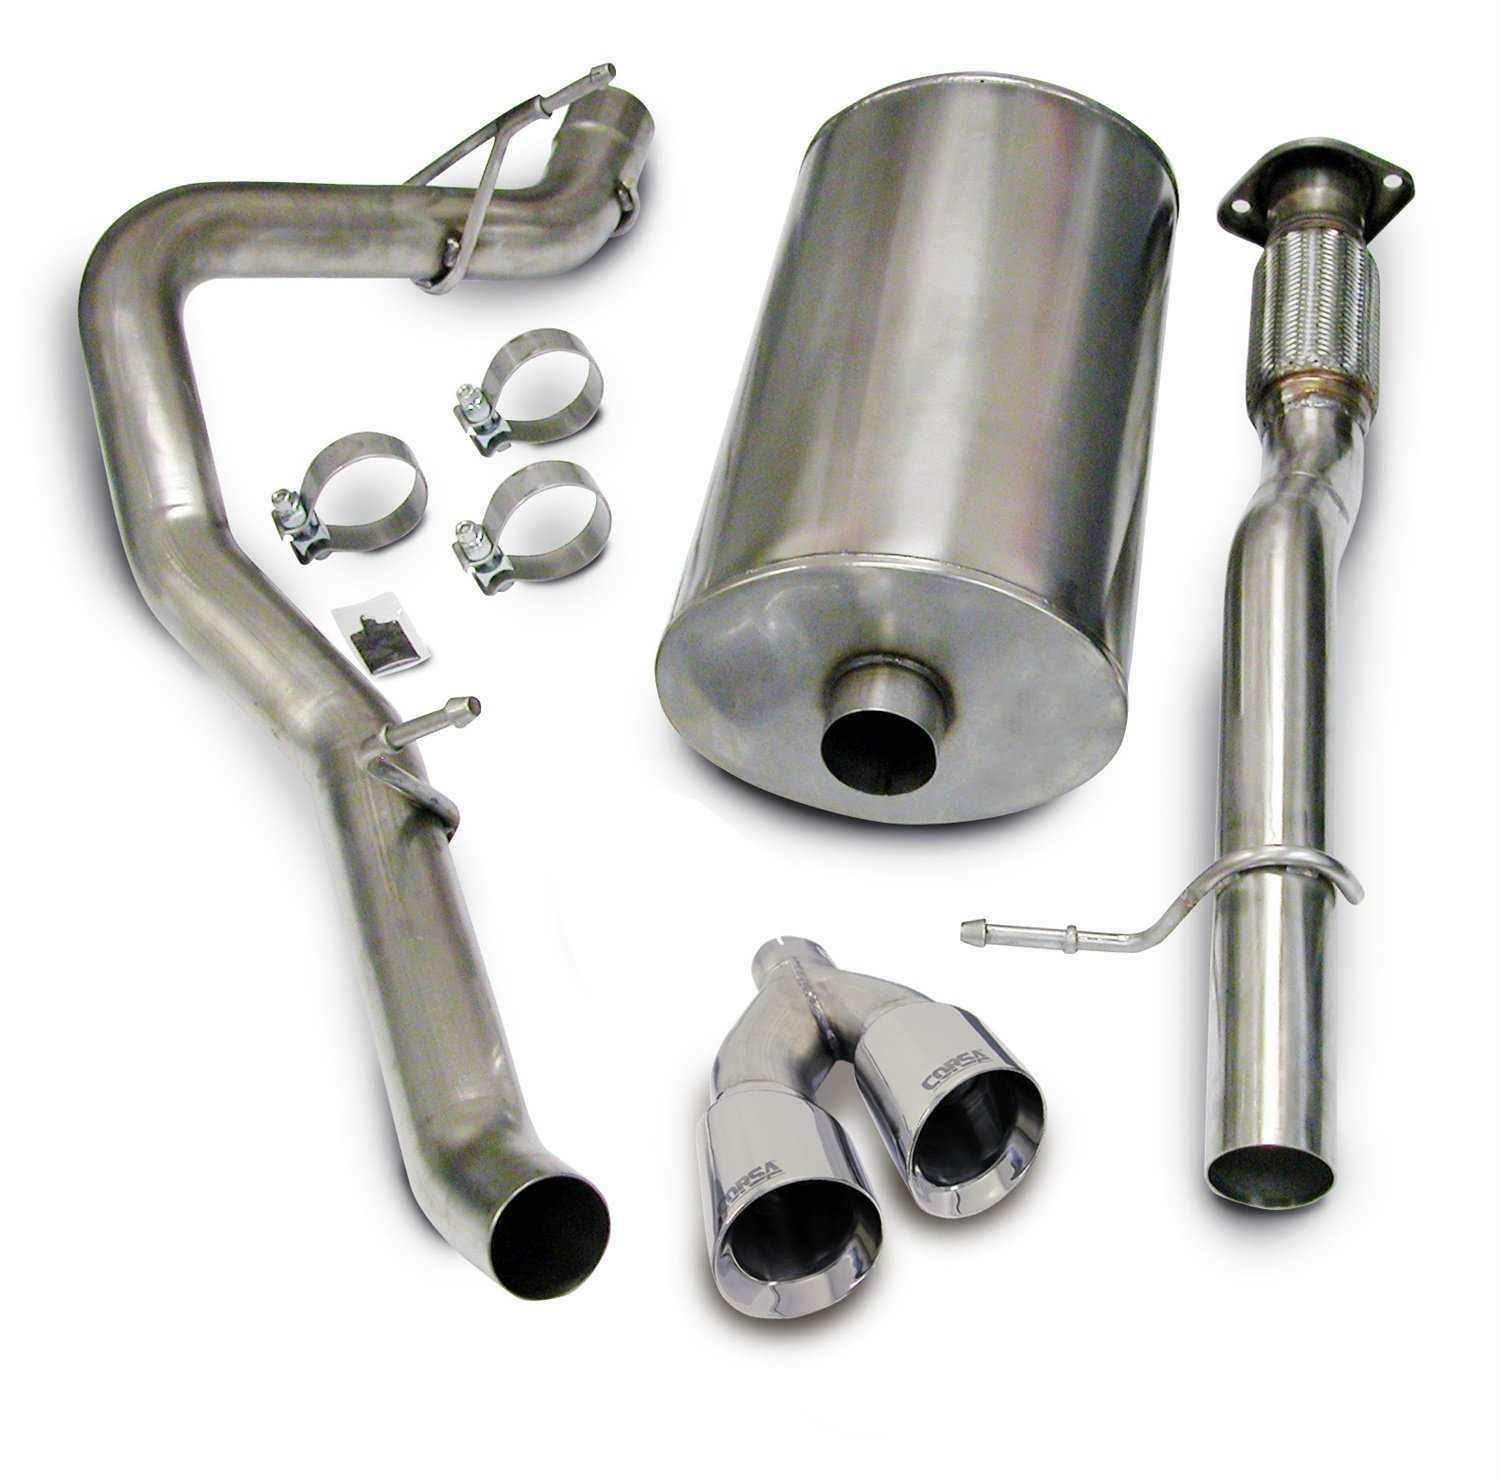 CORSA 14914 Cat-Back System for Suburban Yukon 2009 Corsa Performance